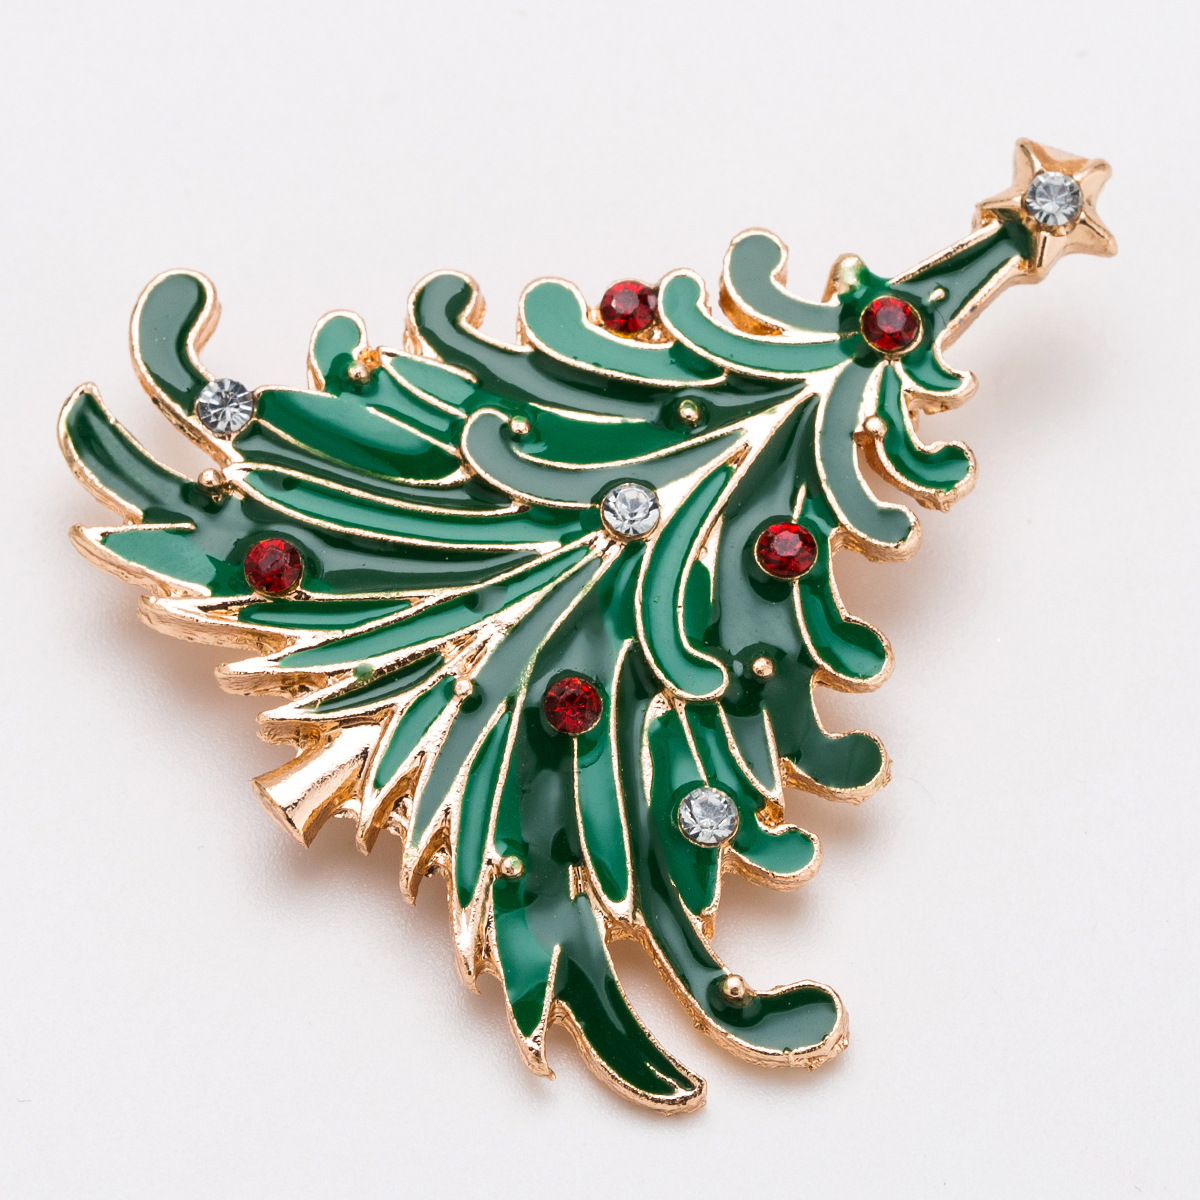 Alloy Fashion Geometric brooch(Christmas tree) NHJE2221-Christmas-tree